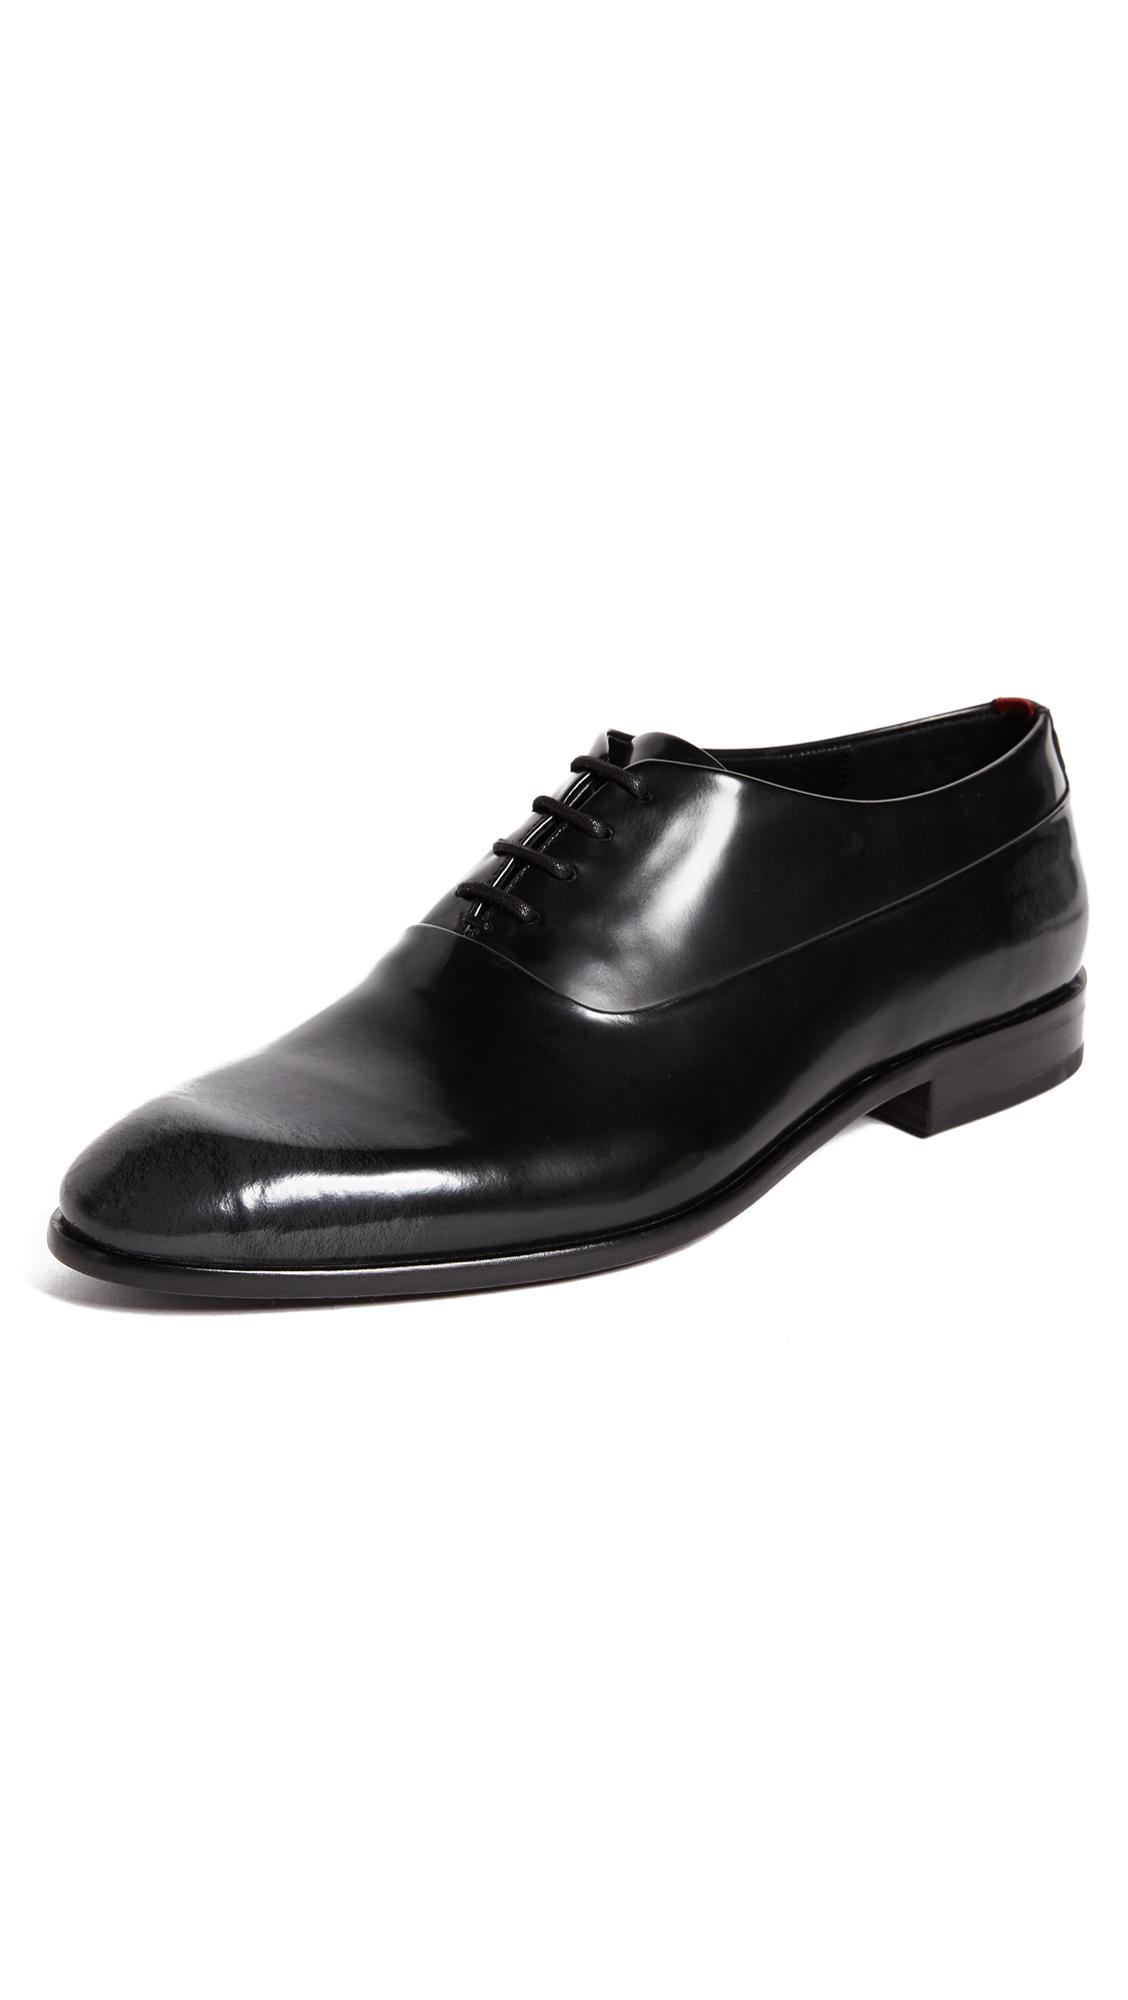 Mens Appeal_oxfr_bo Oxfords HUGO BOSS Browse Cheap Online GsB8Y1m